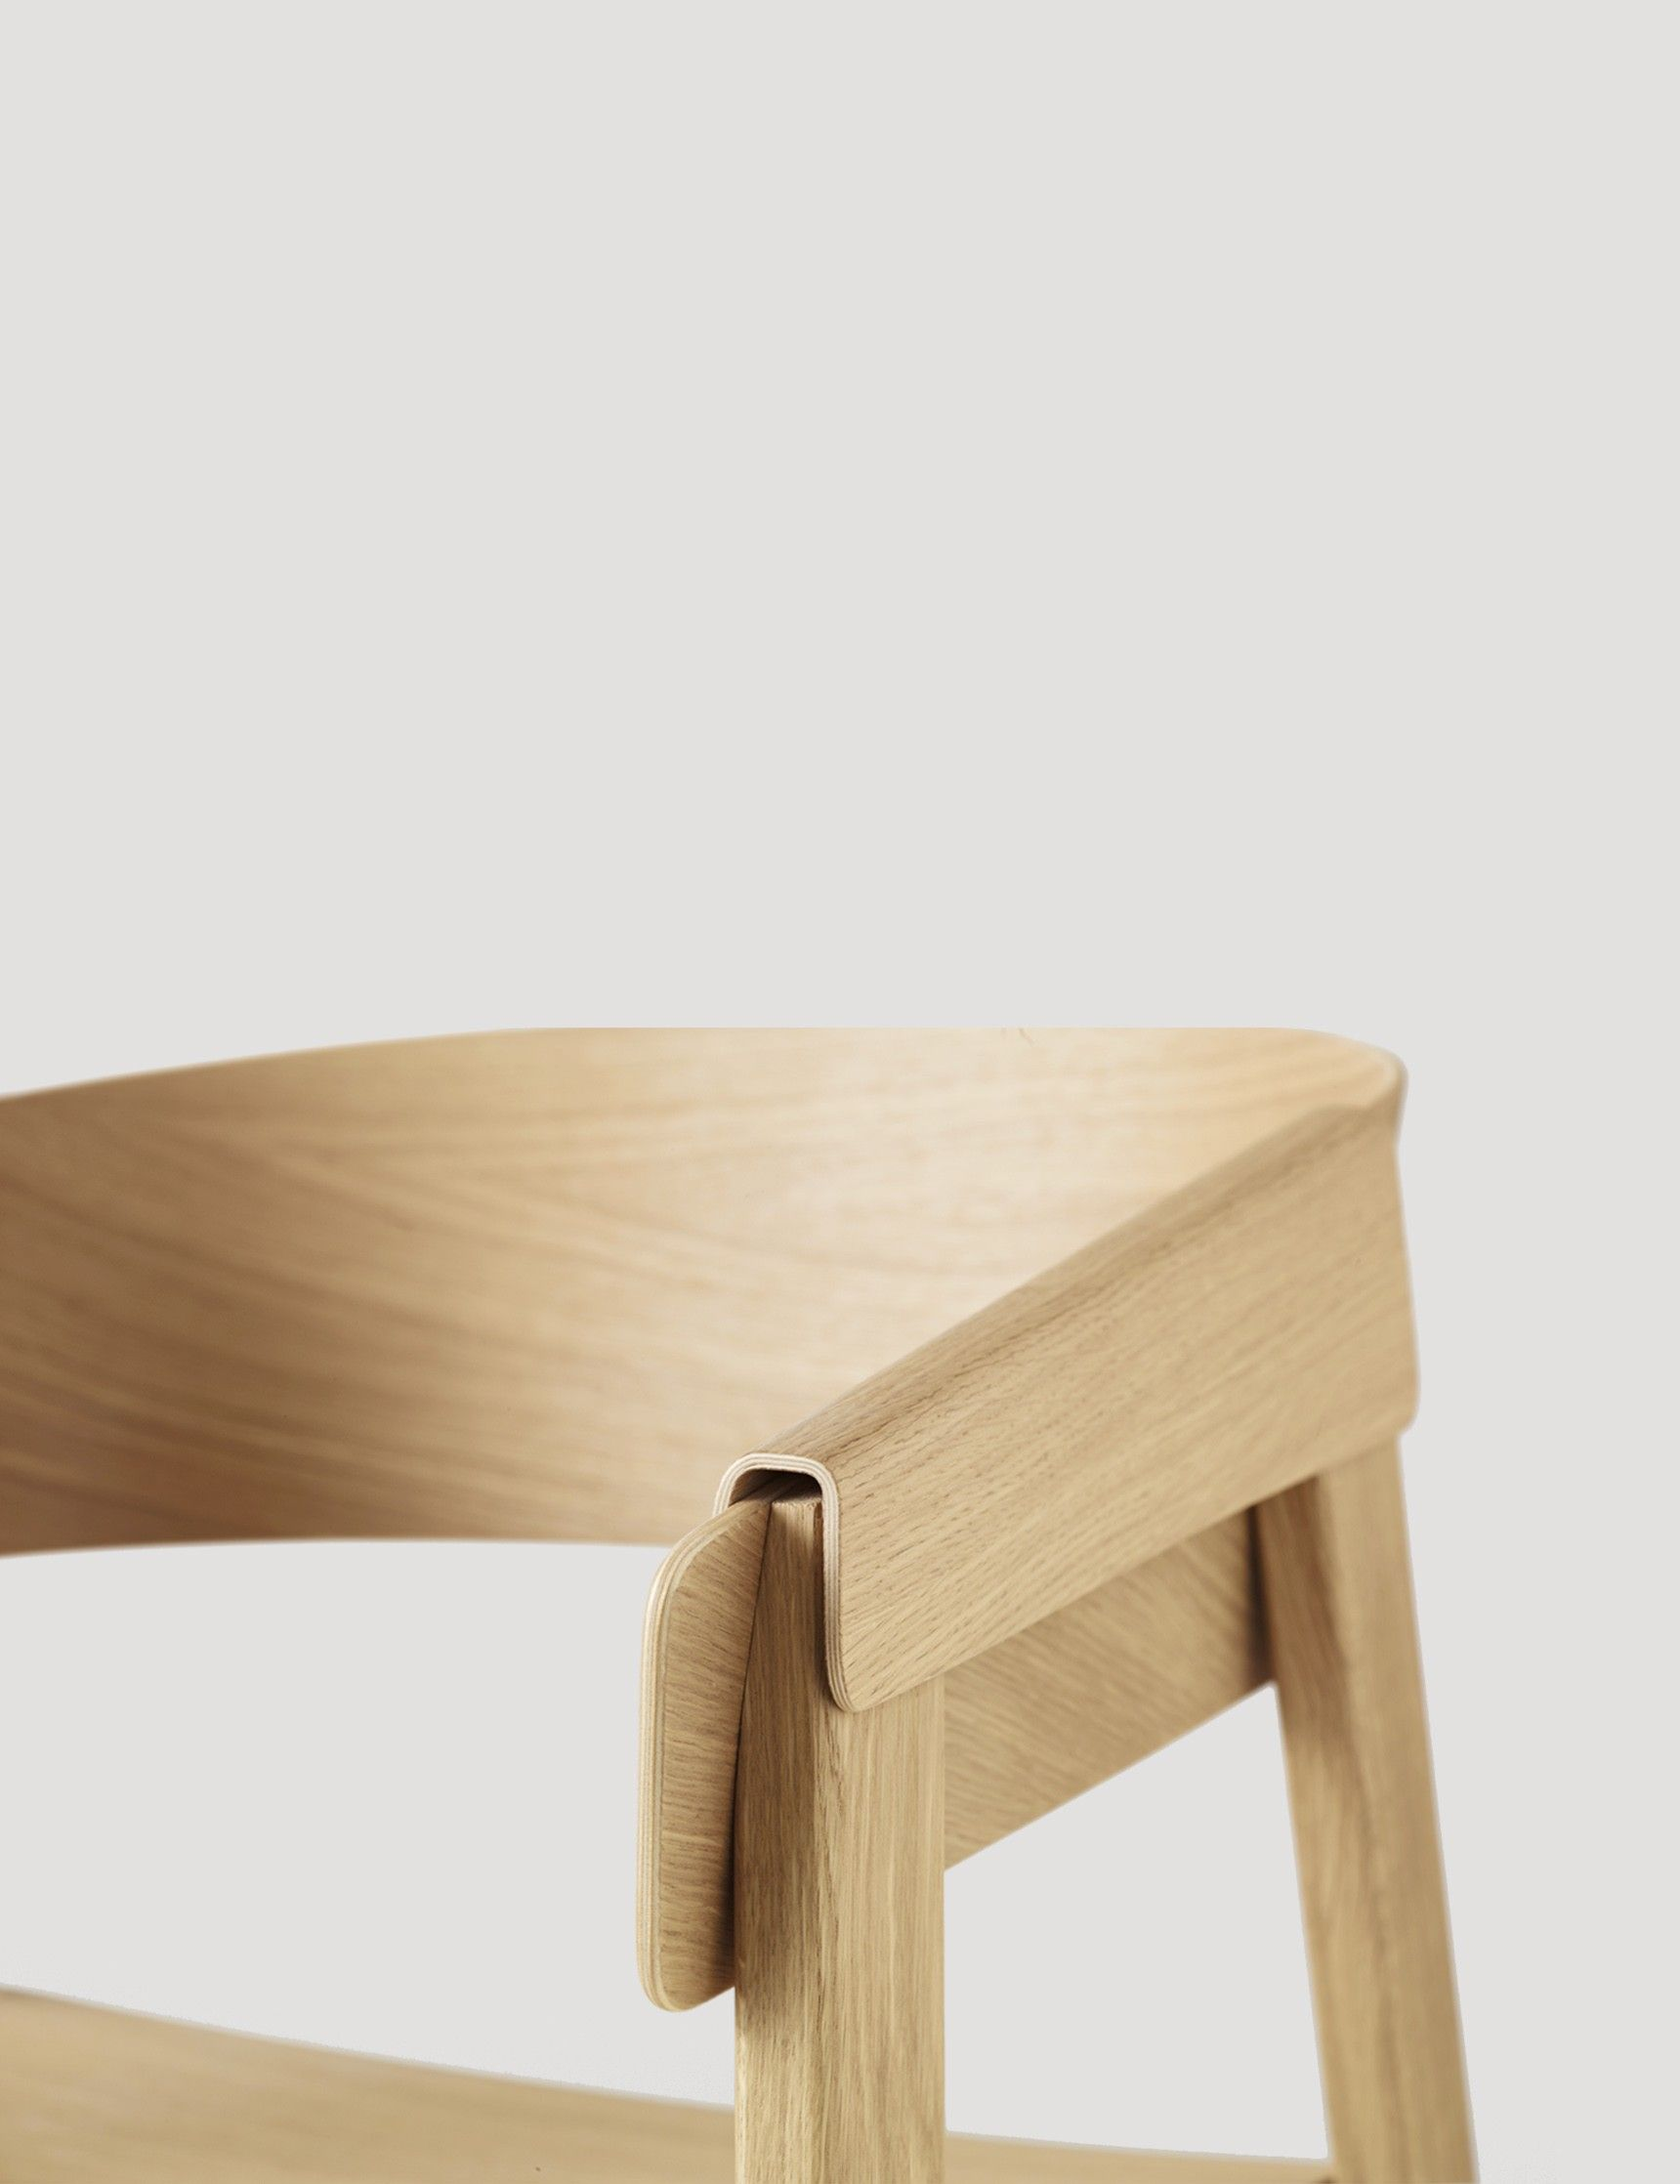 COVER Chair, designed by Thomas Bentzen, is a modern